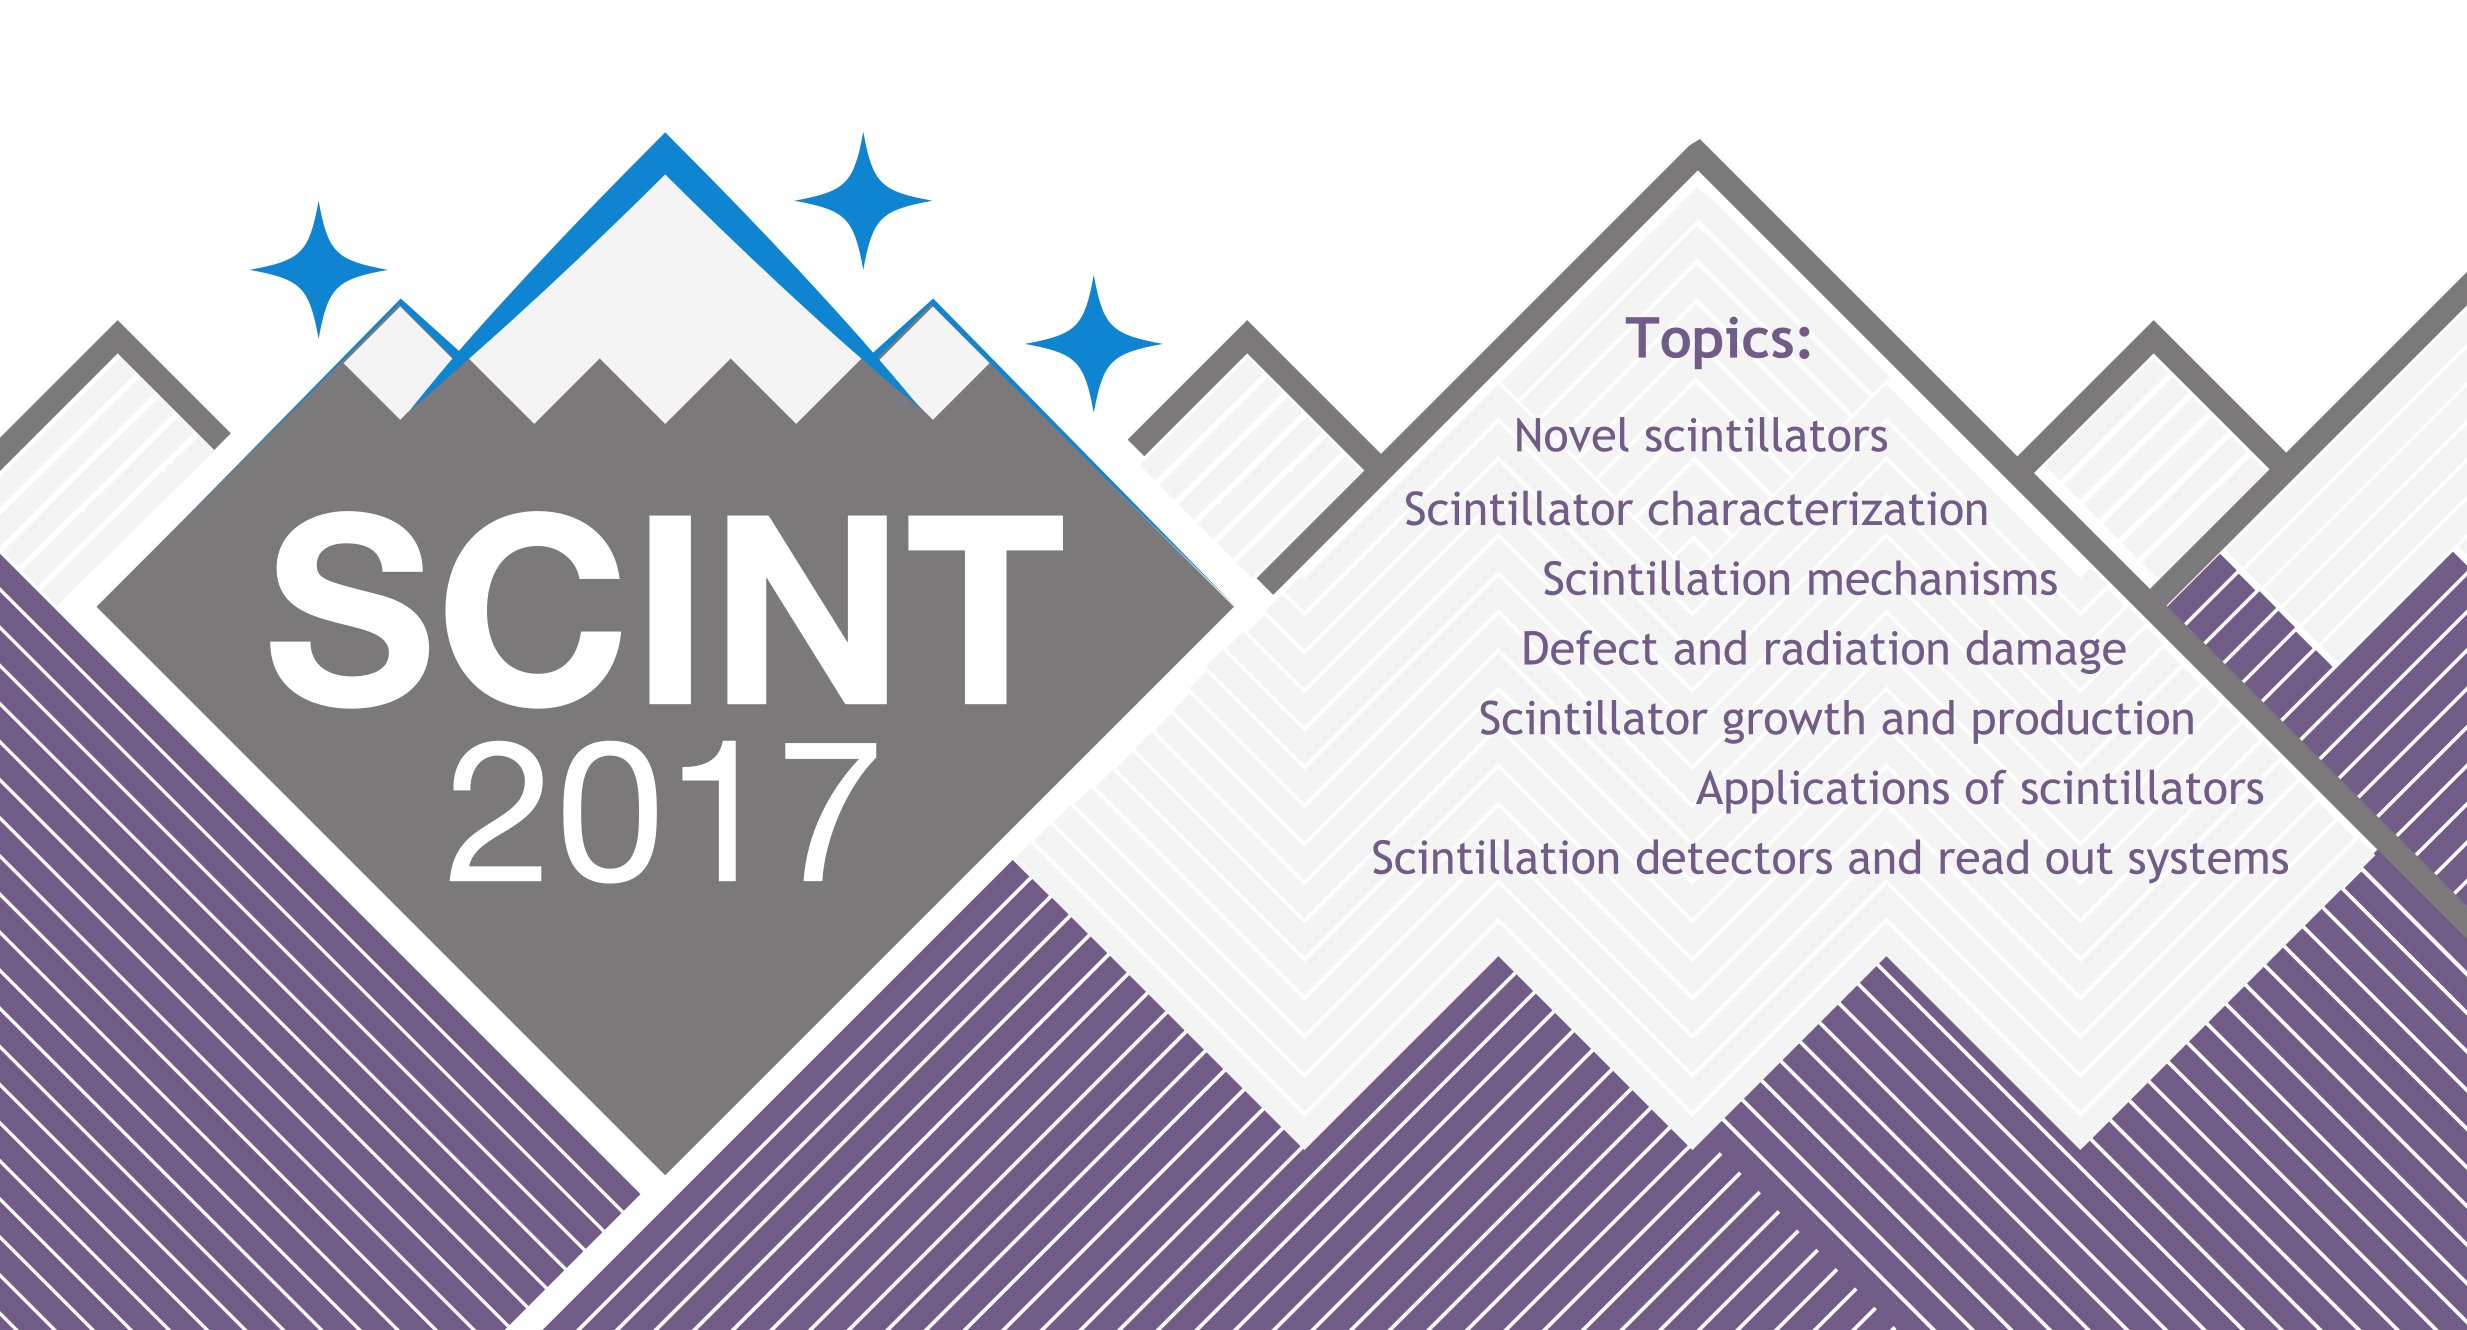 SCINT 2017 14th Int Conference on Scintillating Materials and